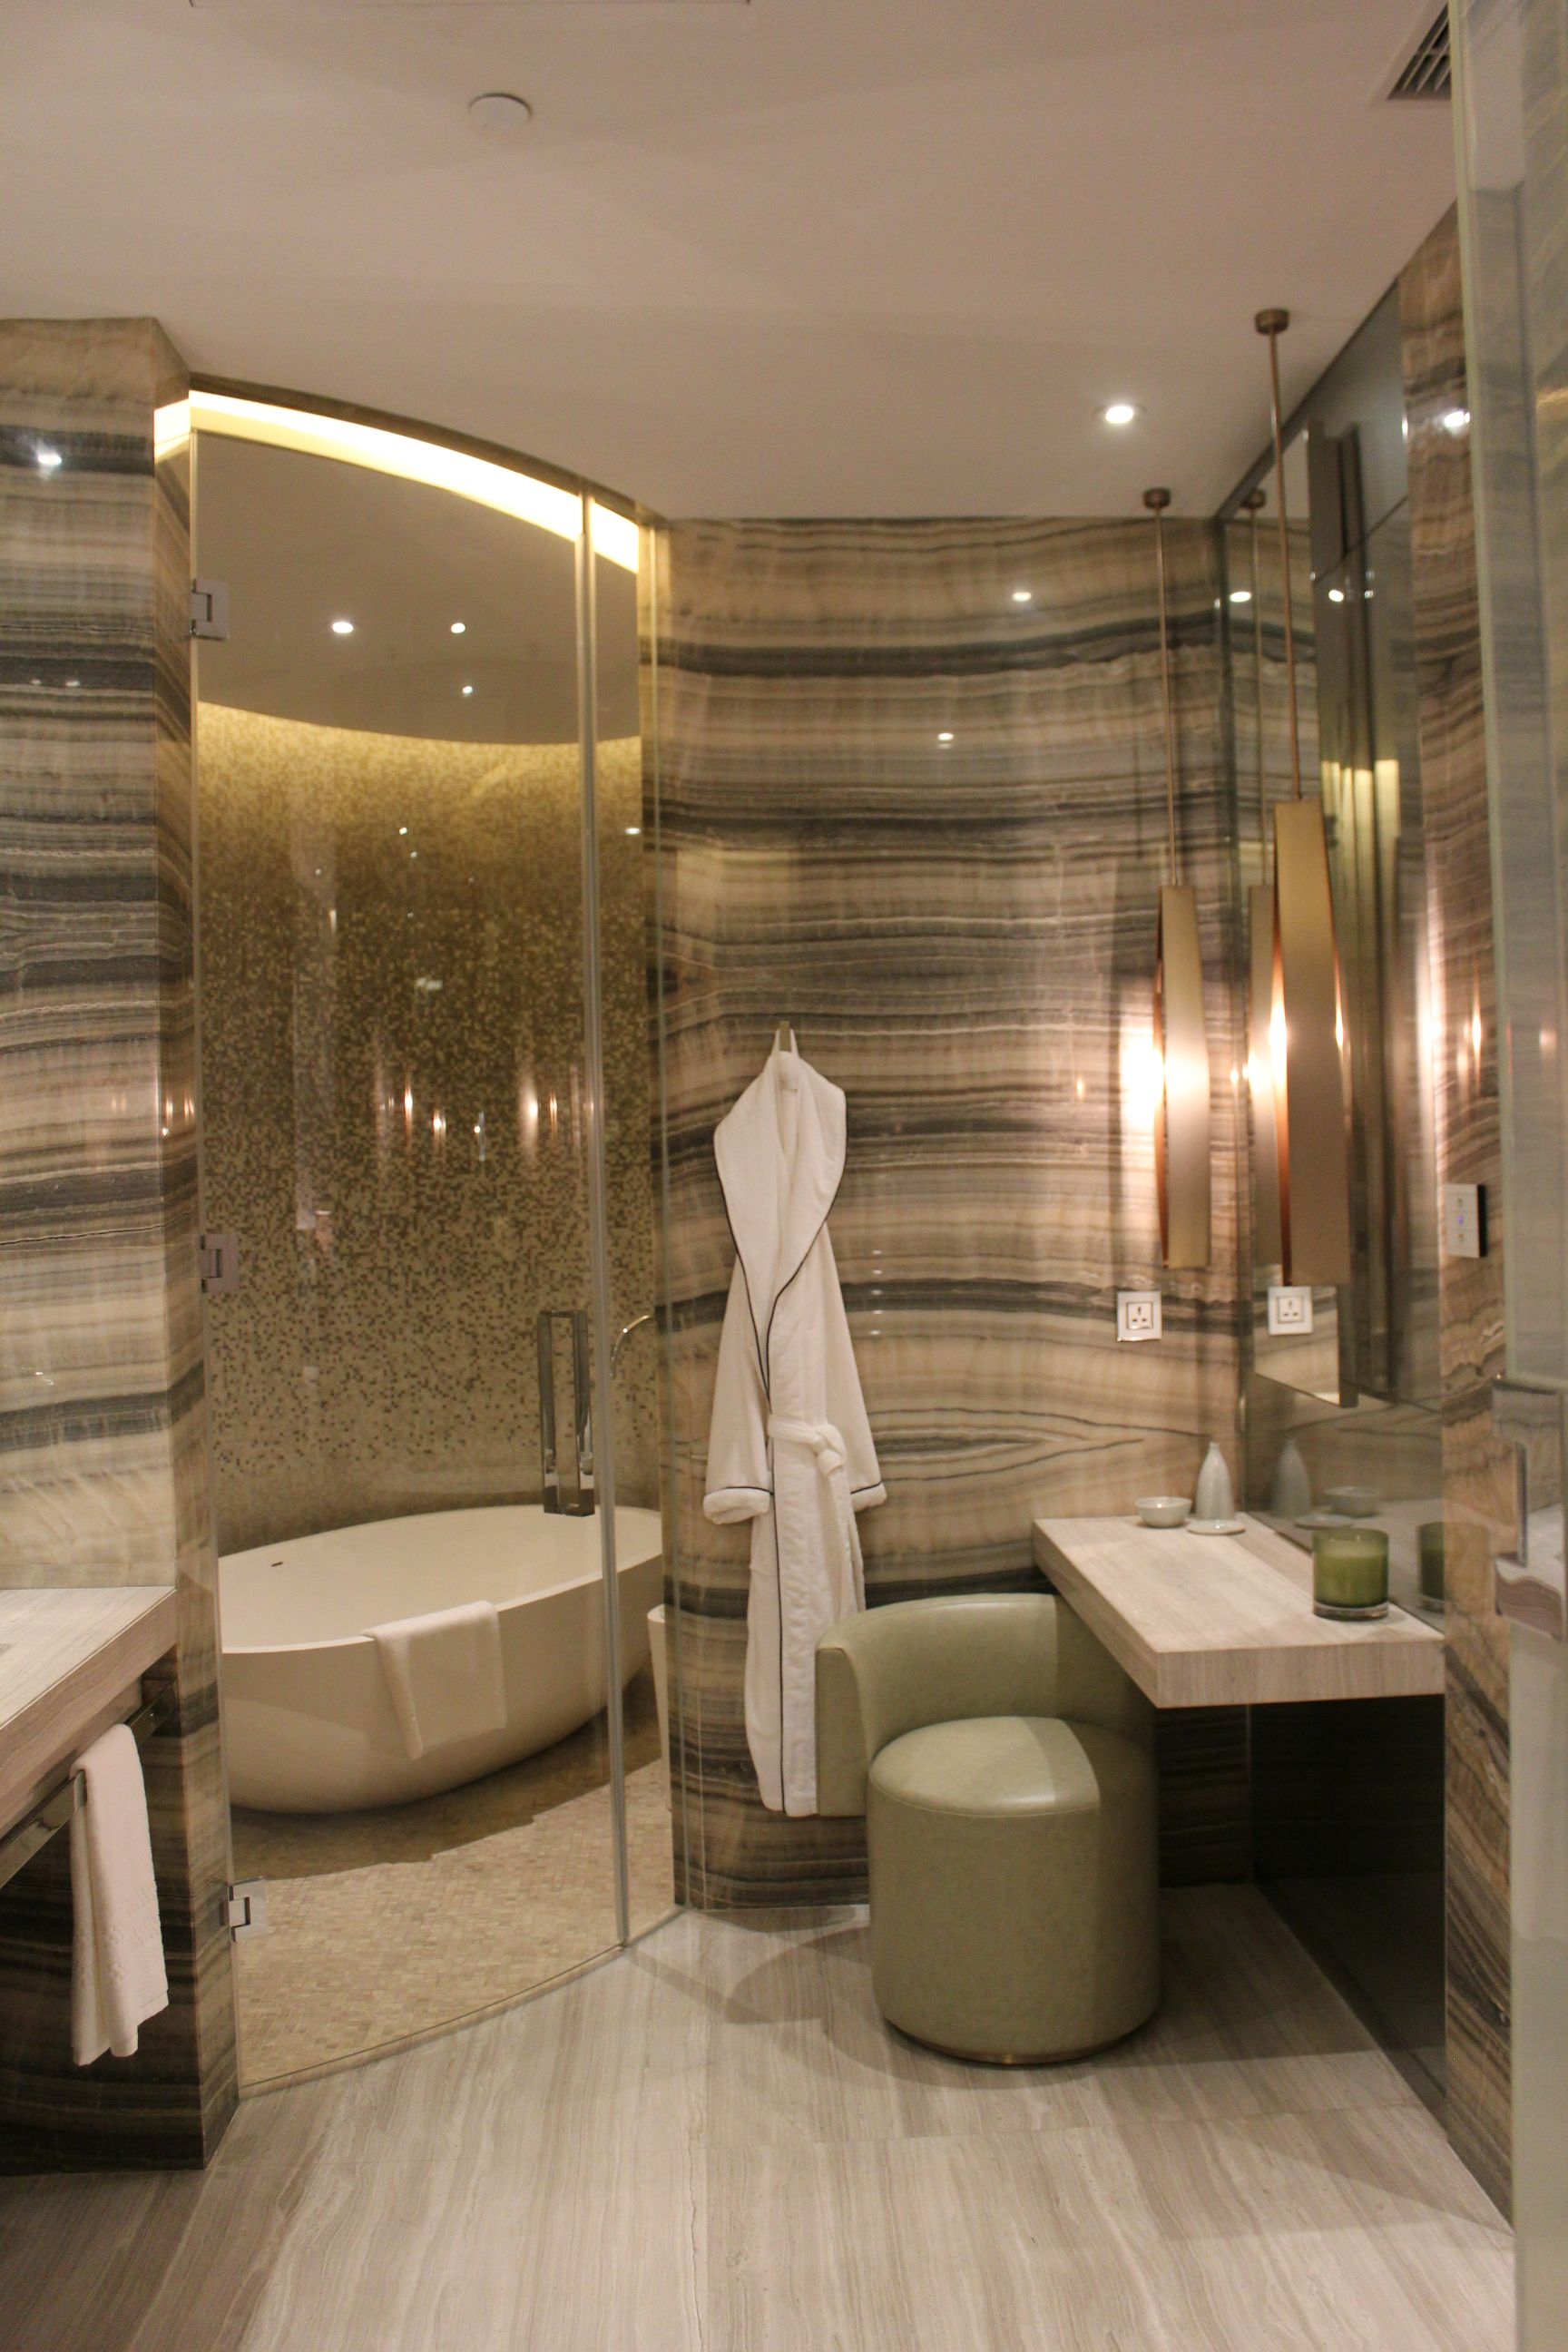 New Design Bathrooms Inspiredthe 'golden' Age Of Shanghai The New Four Seasons